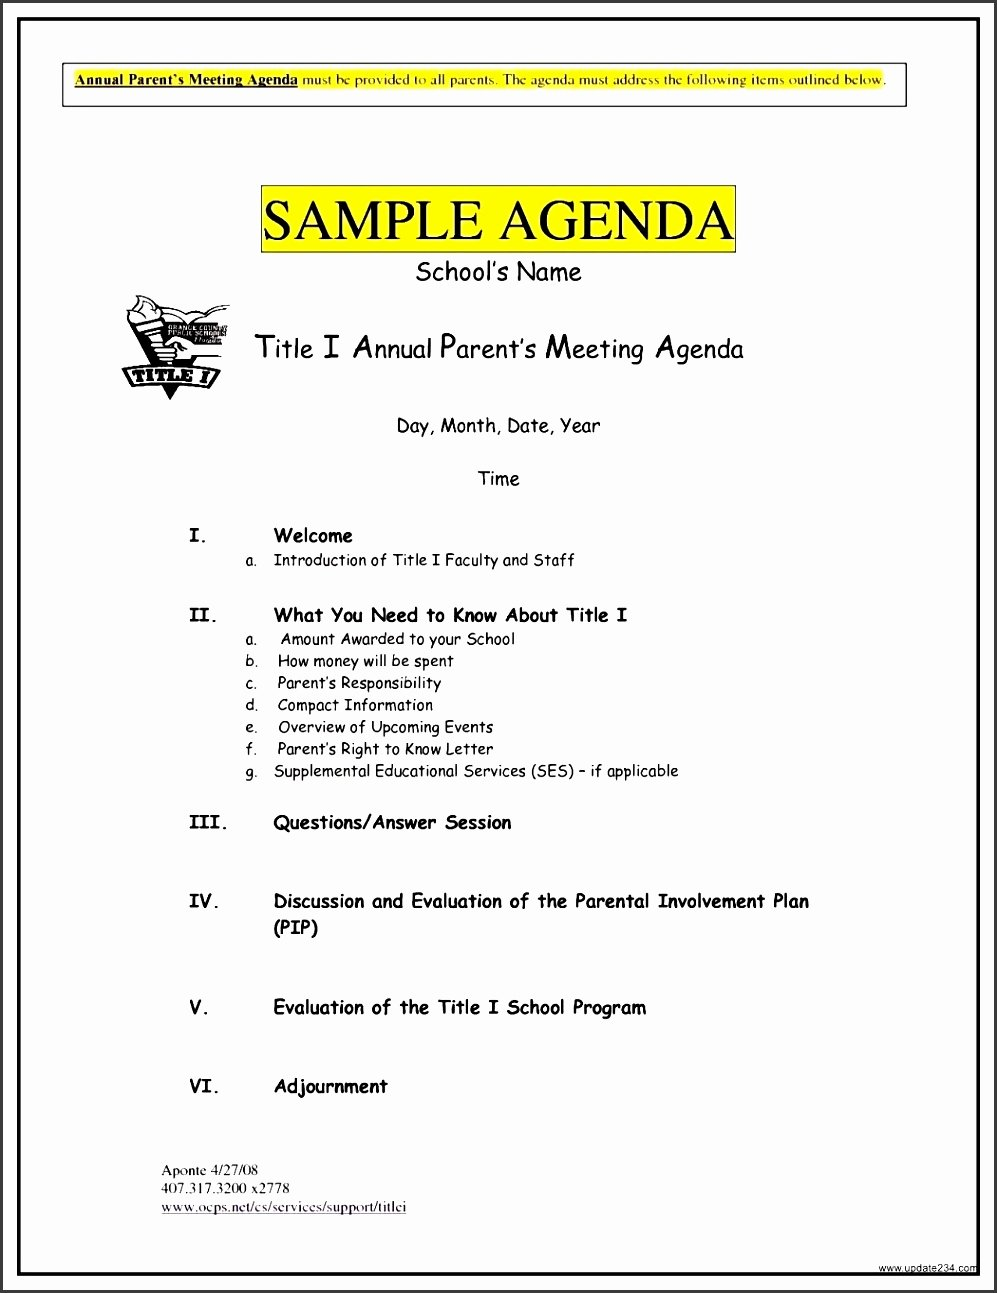 6 Meeting Agenda Templates Sampletemplatess